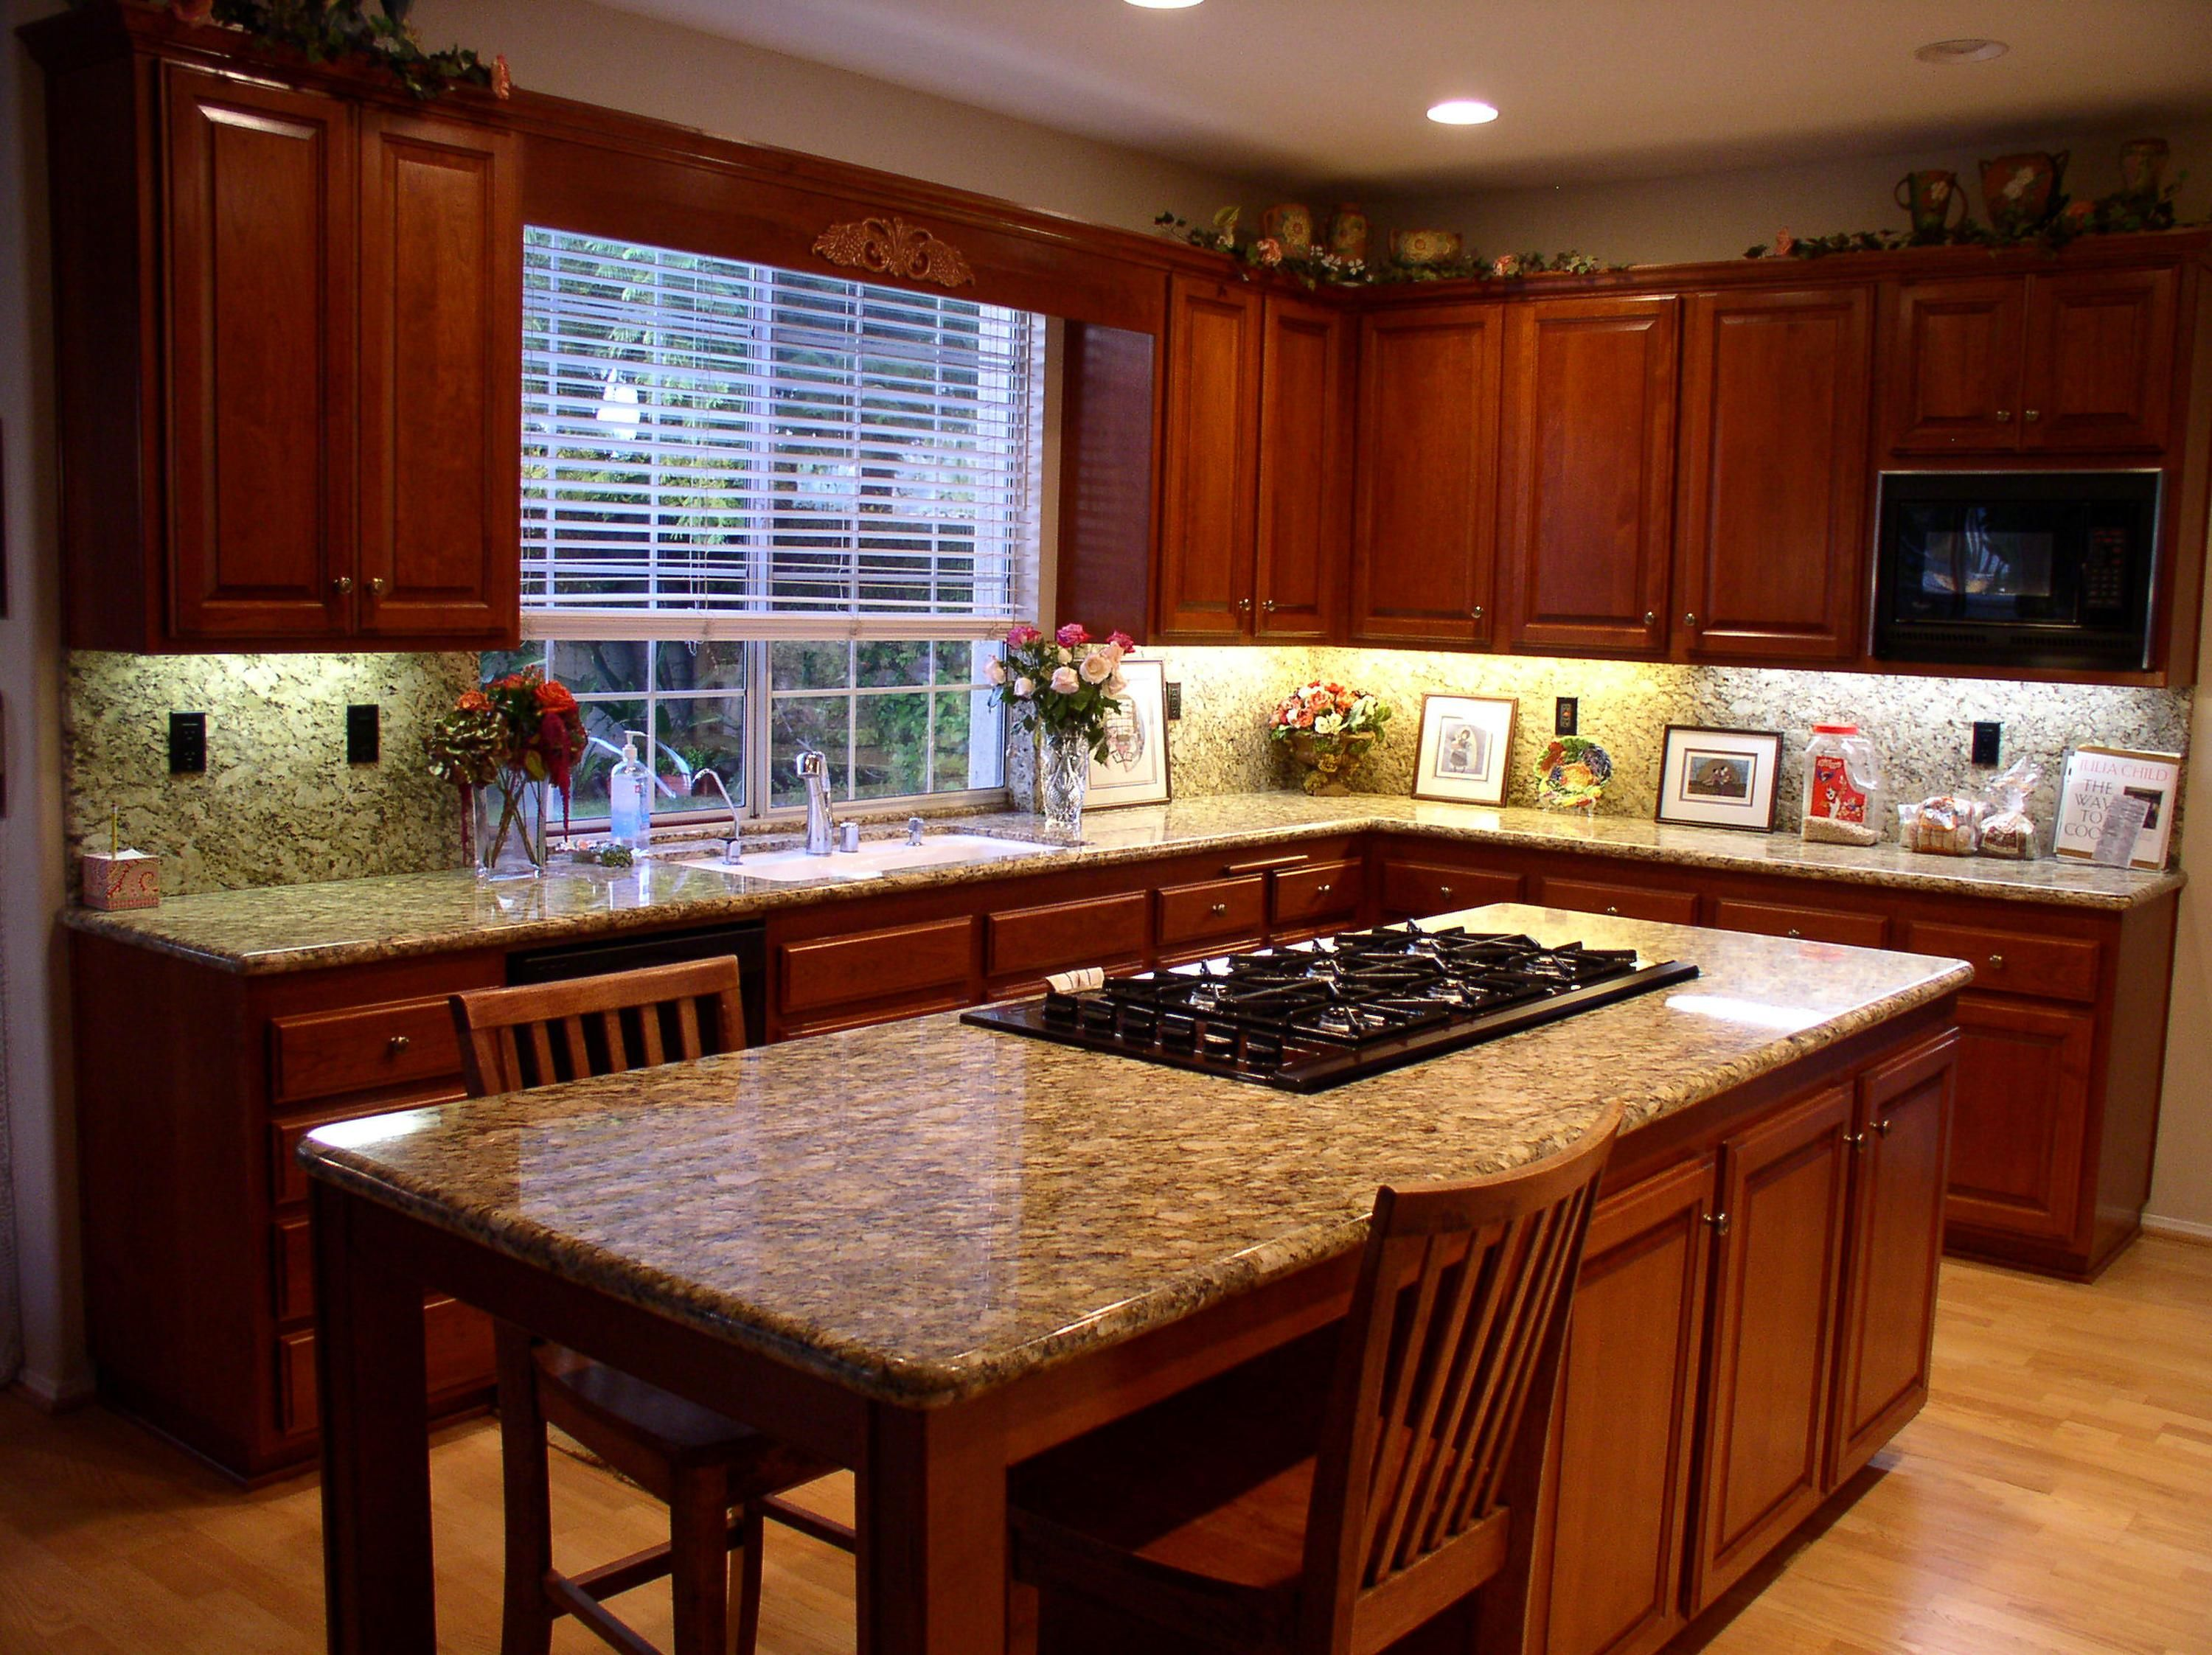 About | Kitchen remodel, Kitchen remodel pictures, Kitchen